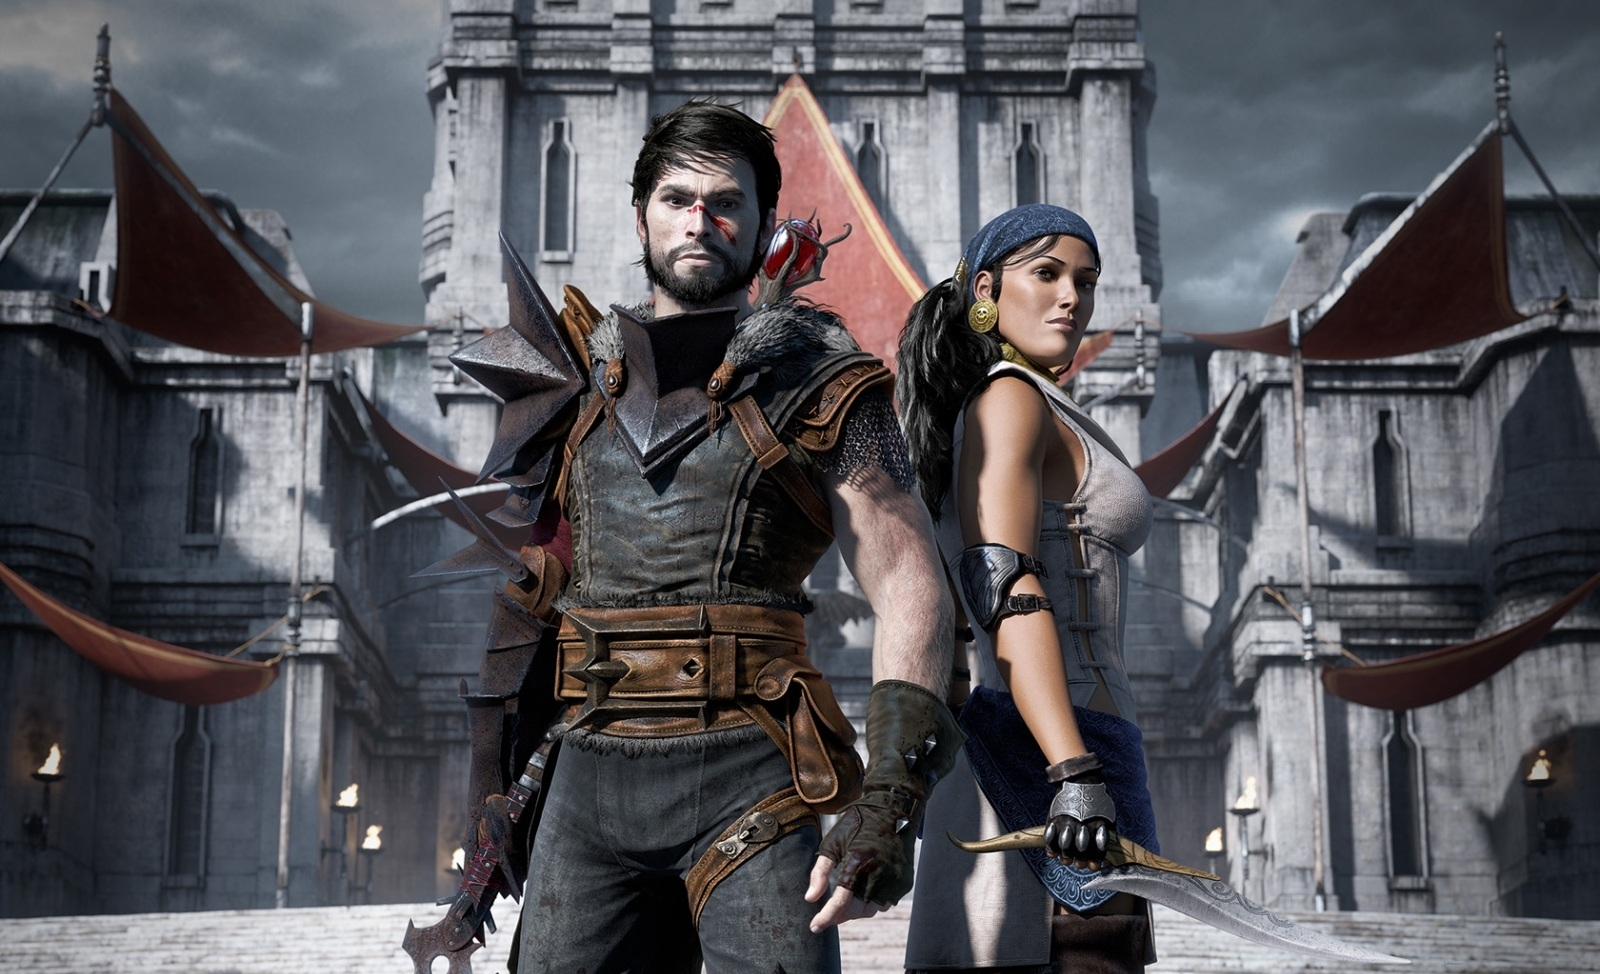 Wallpaper_Dragon_Age_2_Hawke_and_Isabela